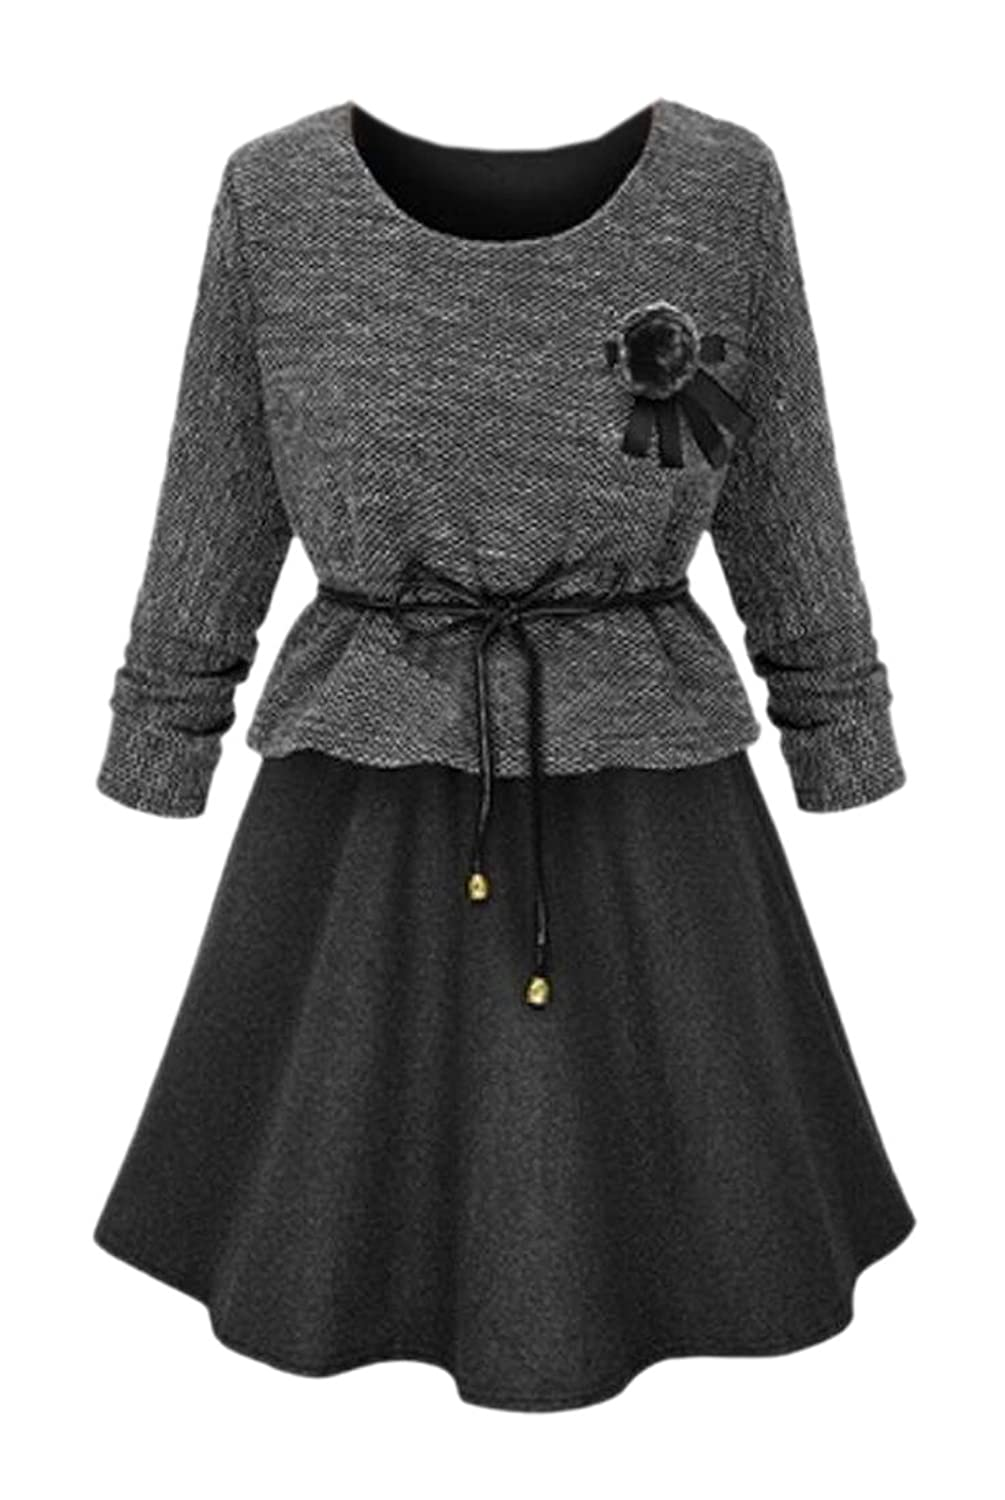 Honey GD Women's Daily Casual Long Sleeve Pullover Dress Tops